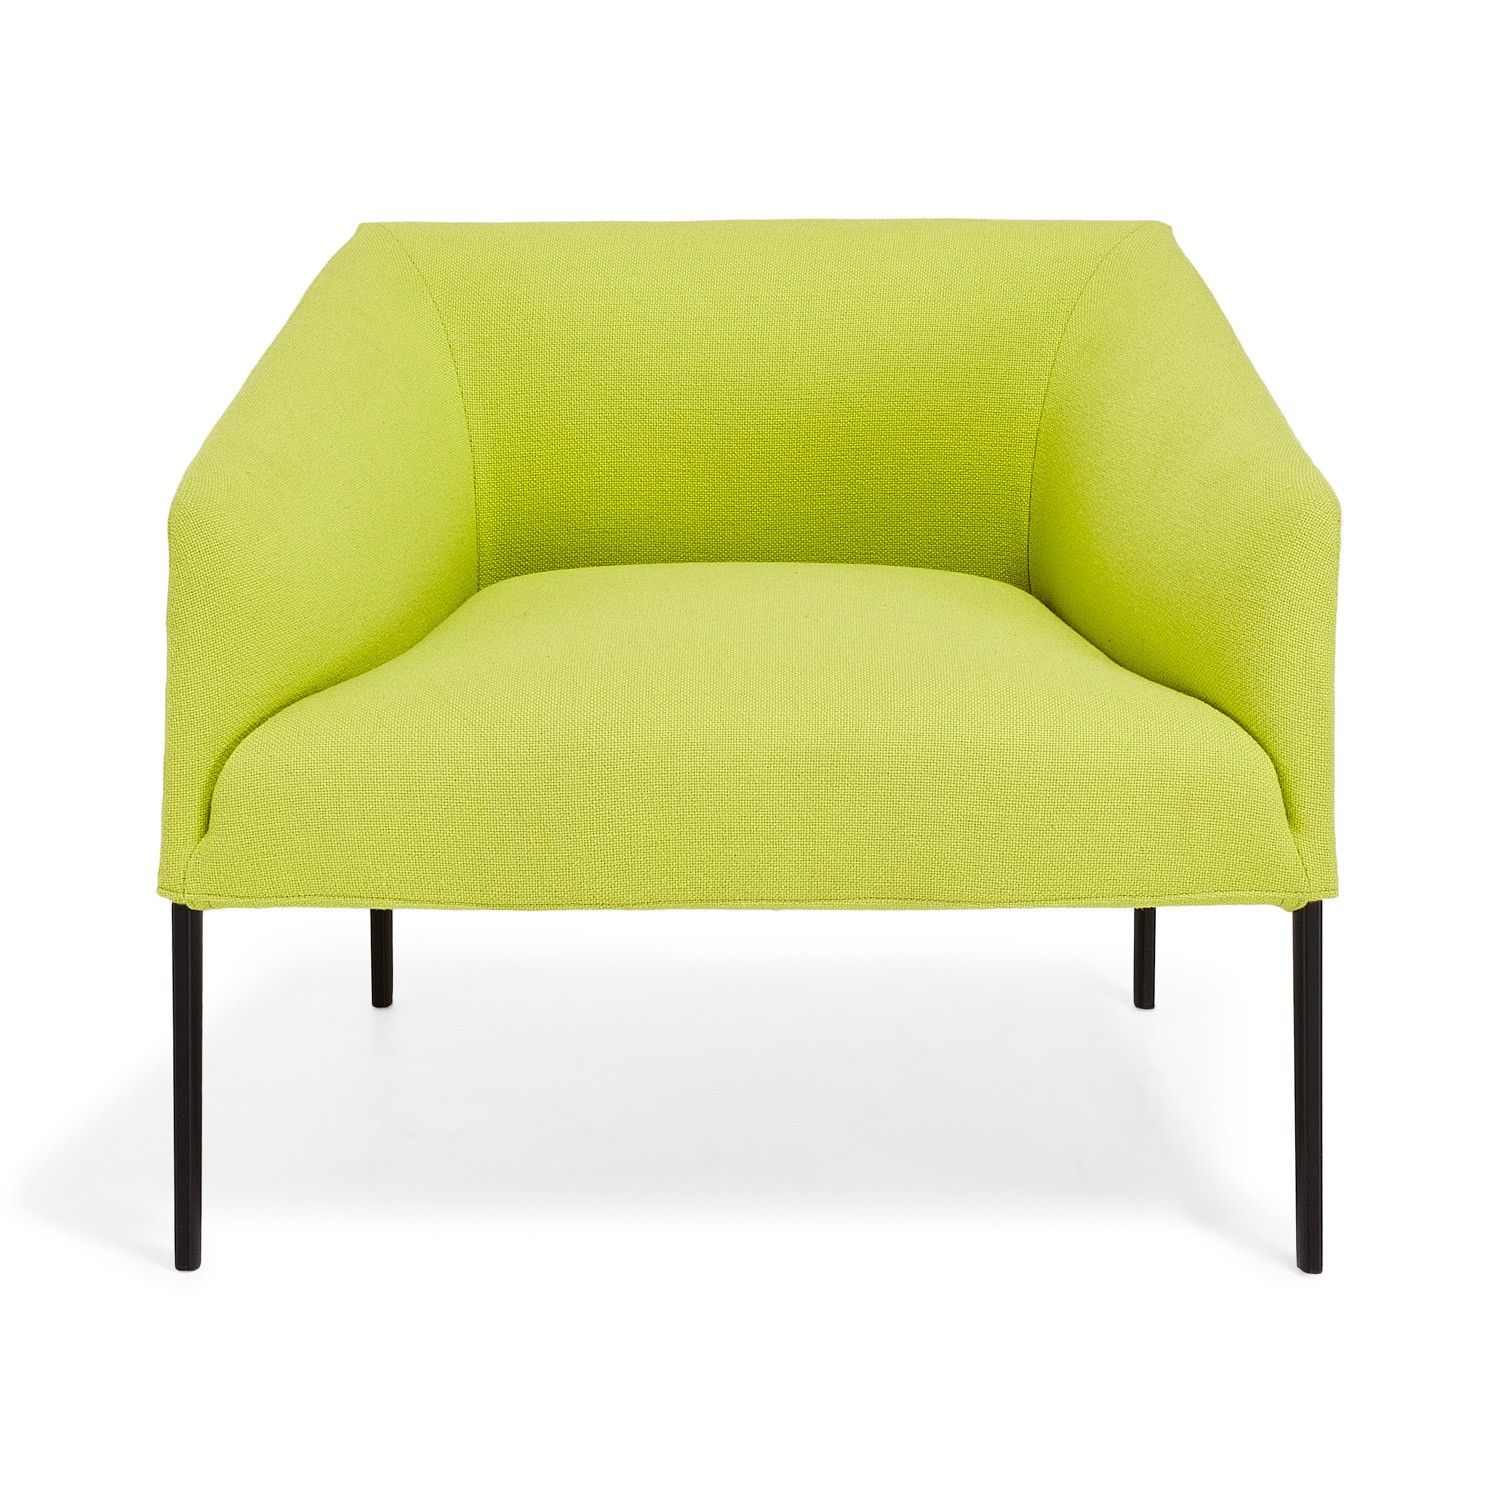 Lime Green Chair, Green accent chair, Furniture